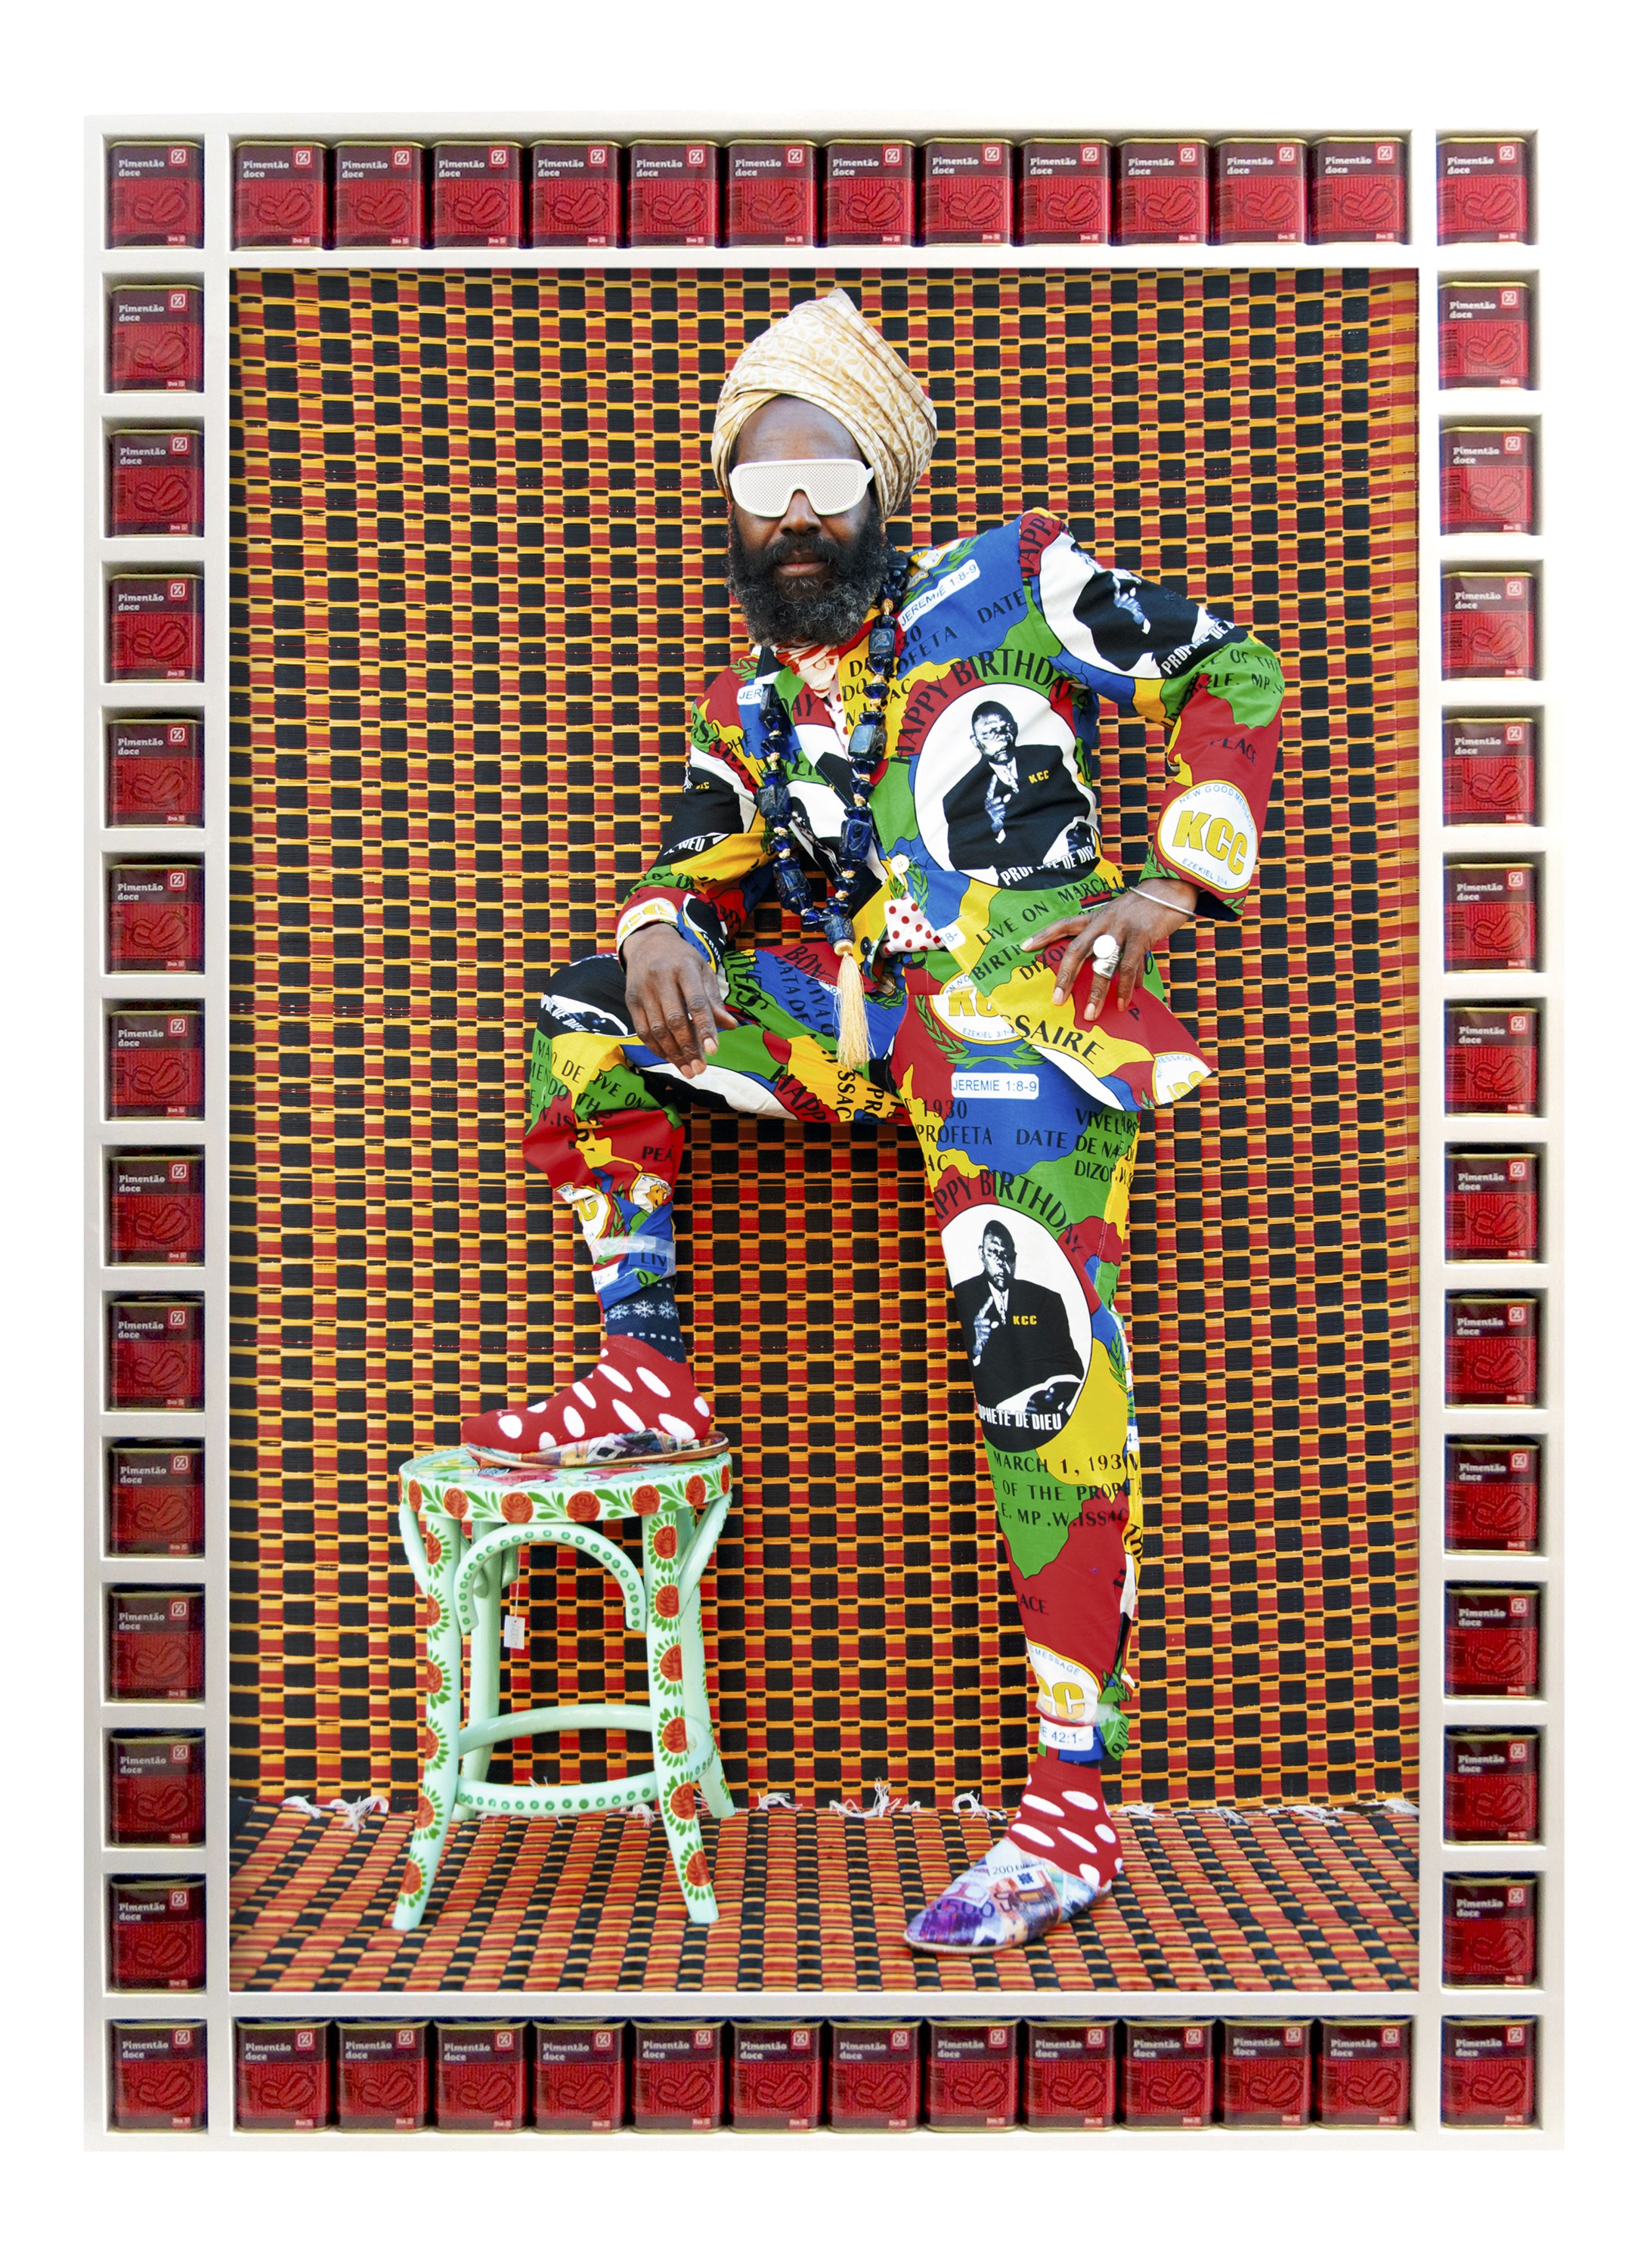 Hassan Hajjaj, Blaize, 2015; from Dandy Lion (Aperture, 2017)